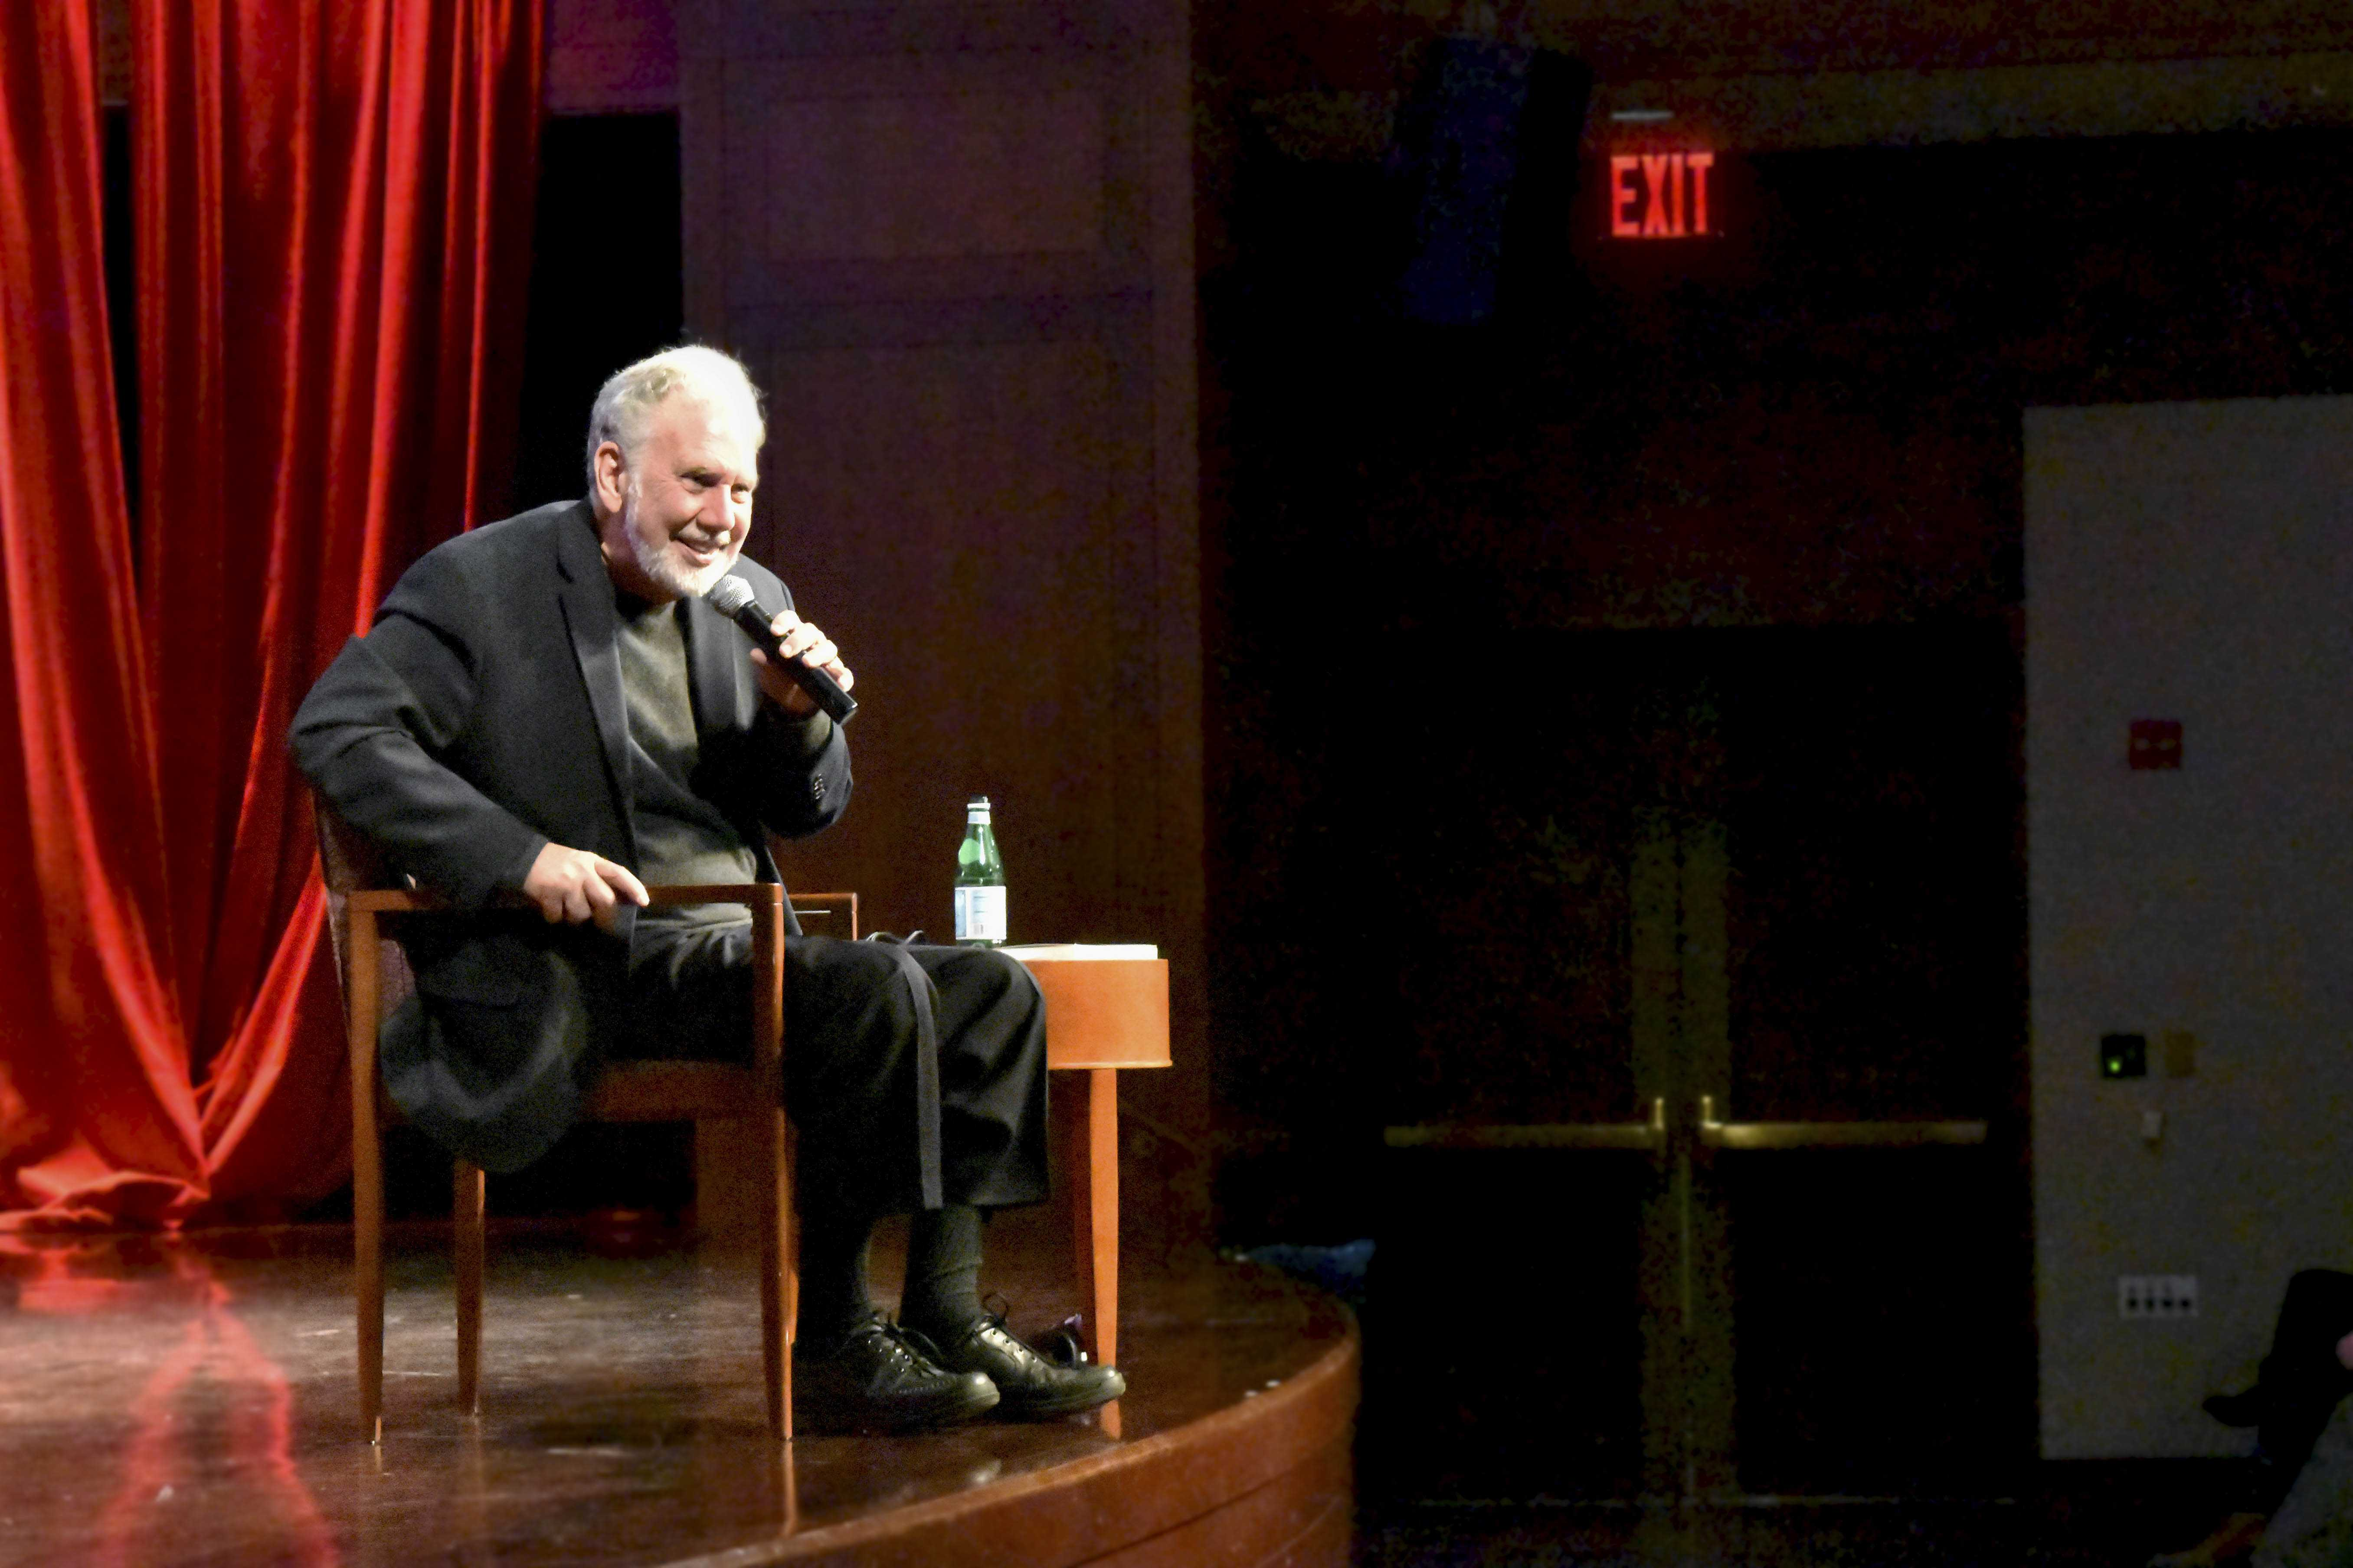 John Sexton, NYU's former President, spoke at a The Review and Debates club event on February 21 at the Kimmel Center.  Sexton discussed free speech and answered the questions about the recent cancellations of controversial speakers.